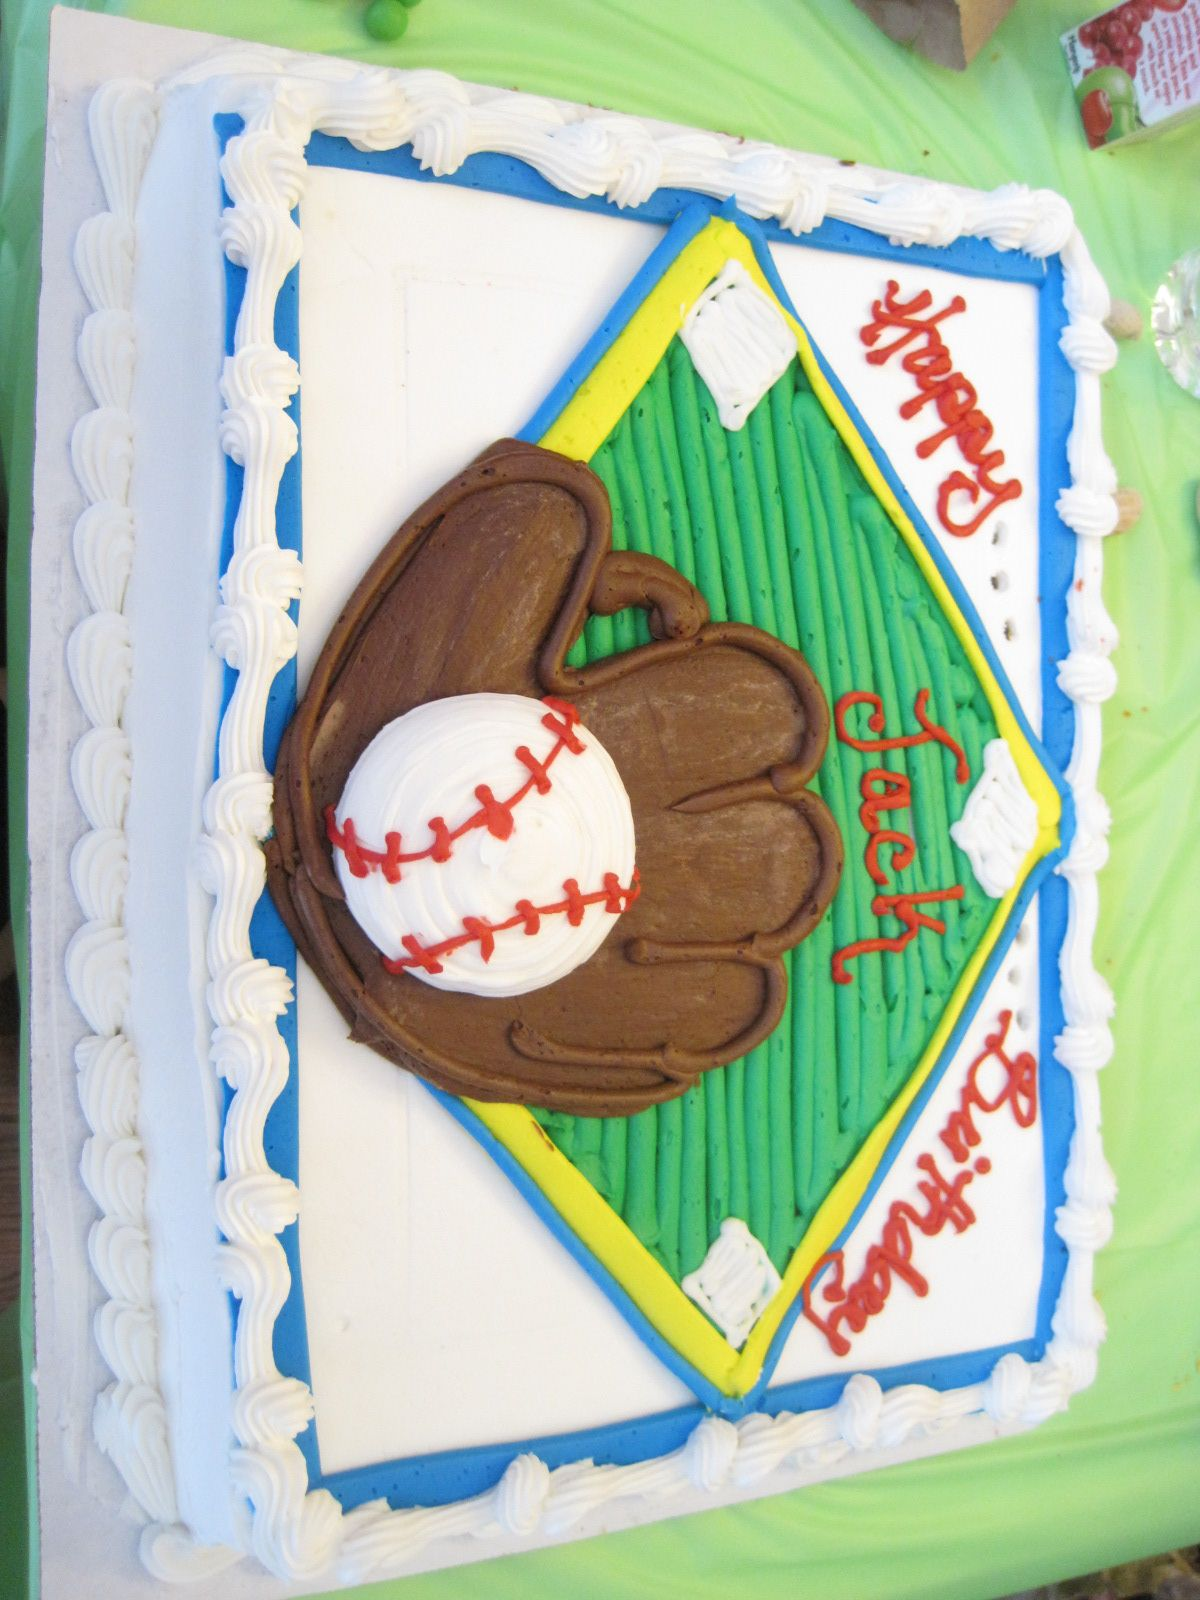 Image result for costco baseball cake (With images ...